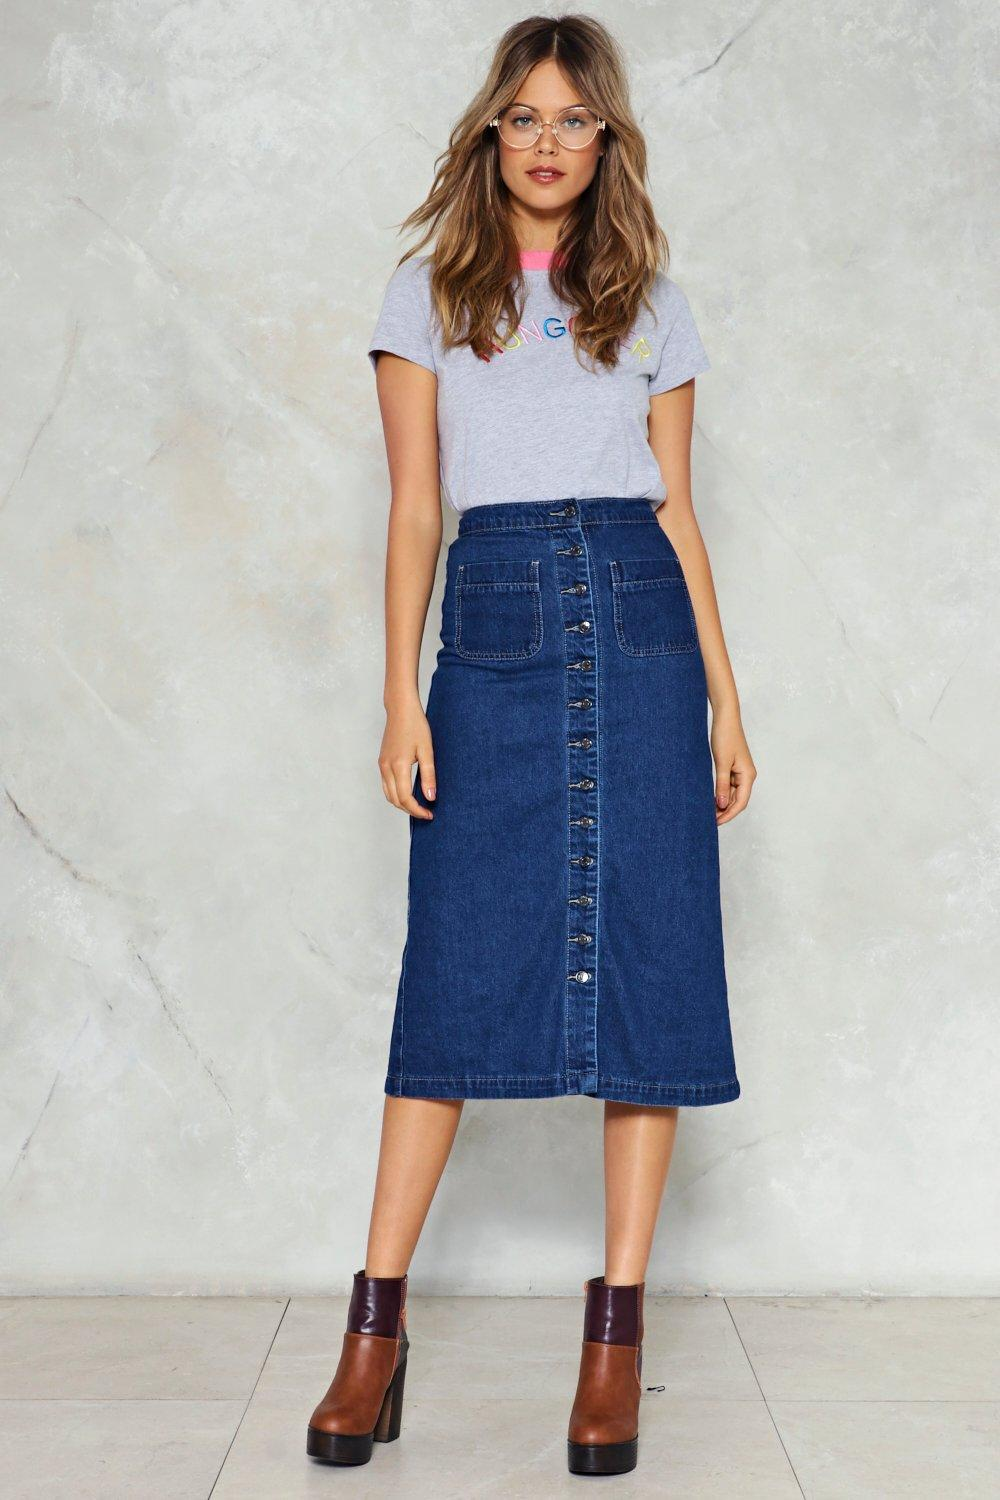 Shop Madewell for women's jeans, shoes, bags, t-shirts, dresses, and more. Free shipping and free returns for Madewell Insiders. Madewell.